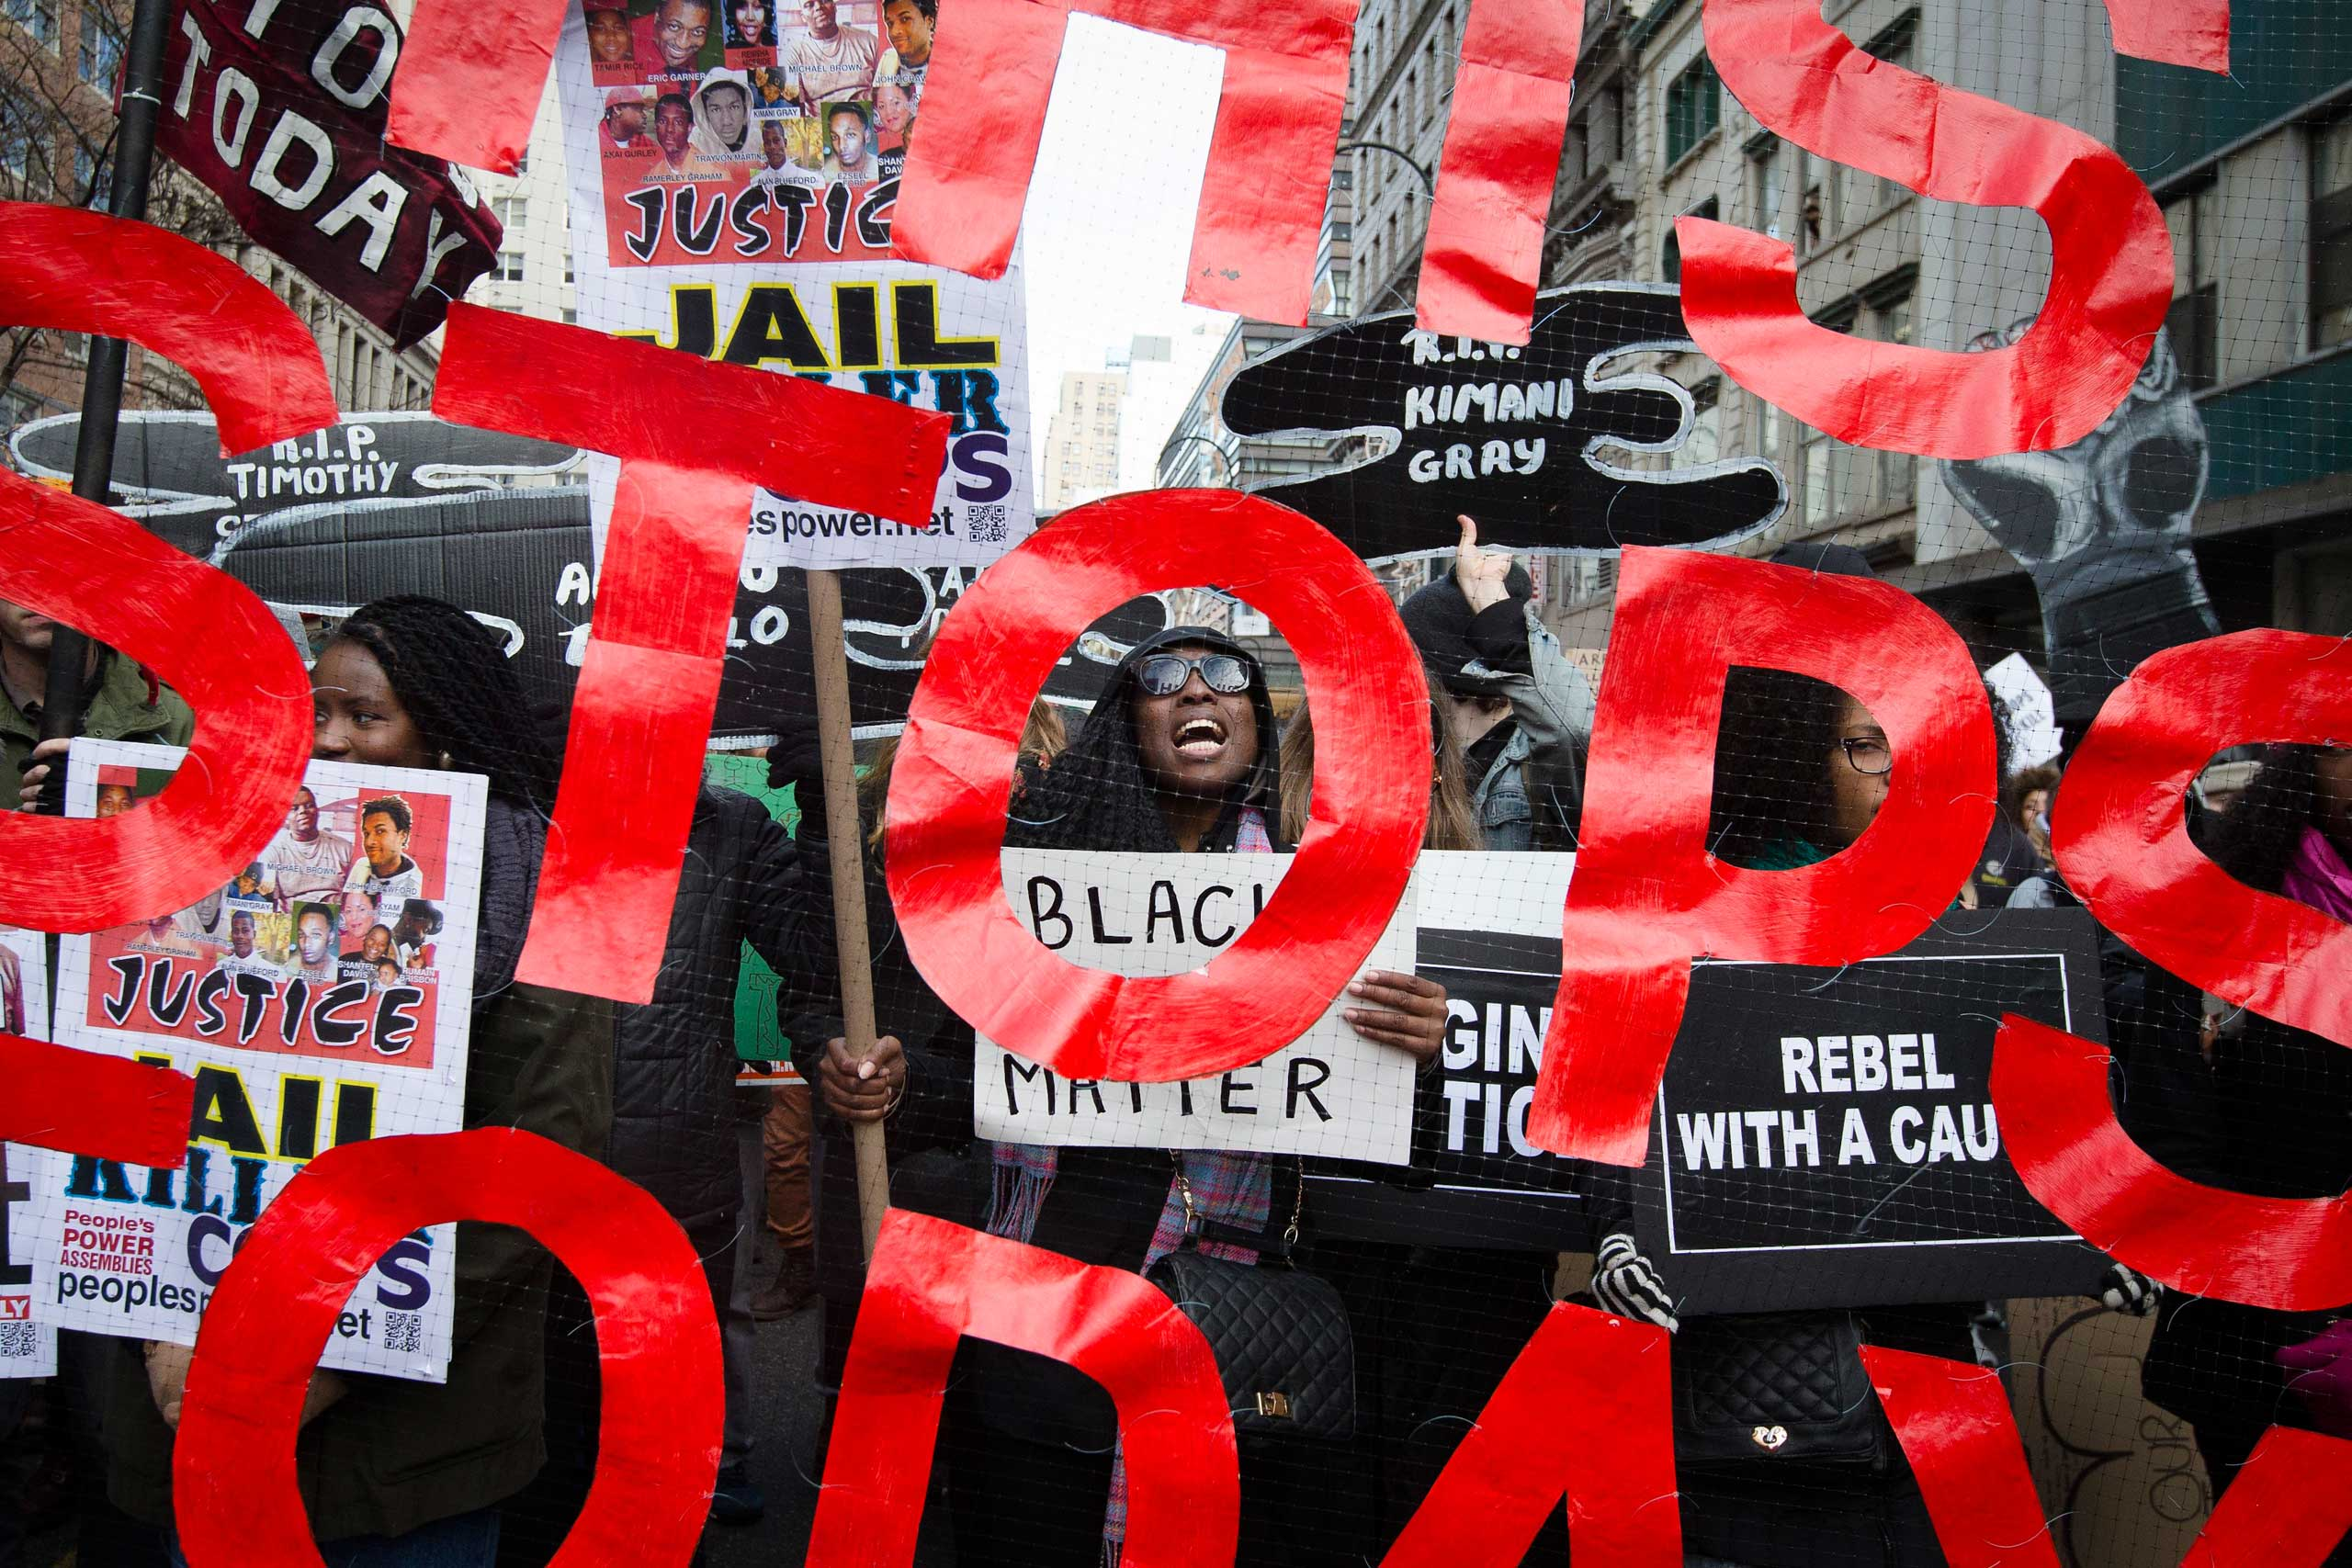 Thousands of protestors demonstrate against police brutality in new York City on Dec. 13, 2014.